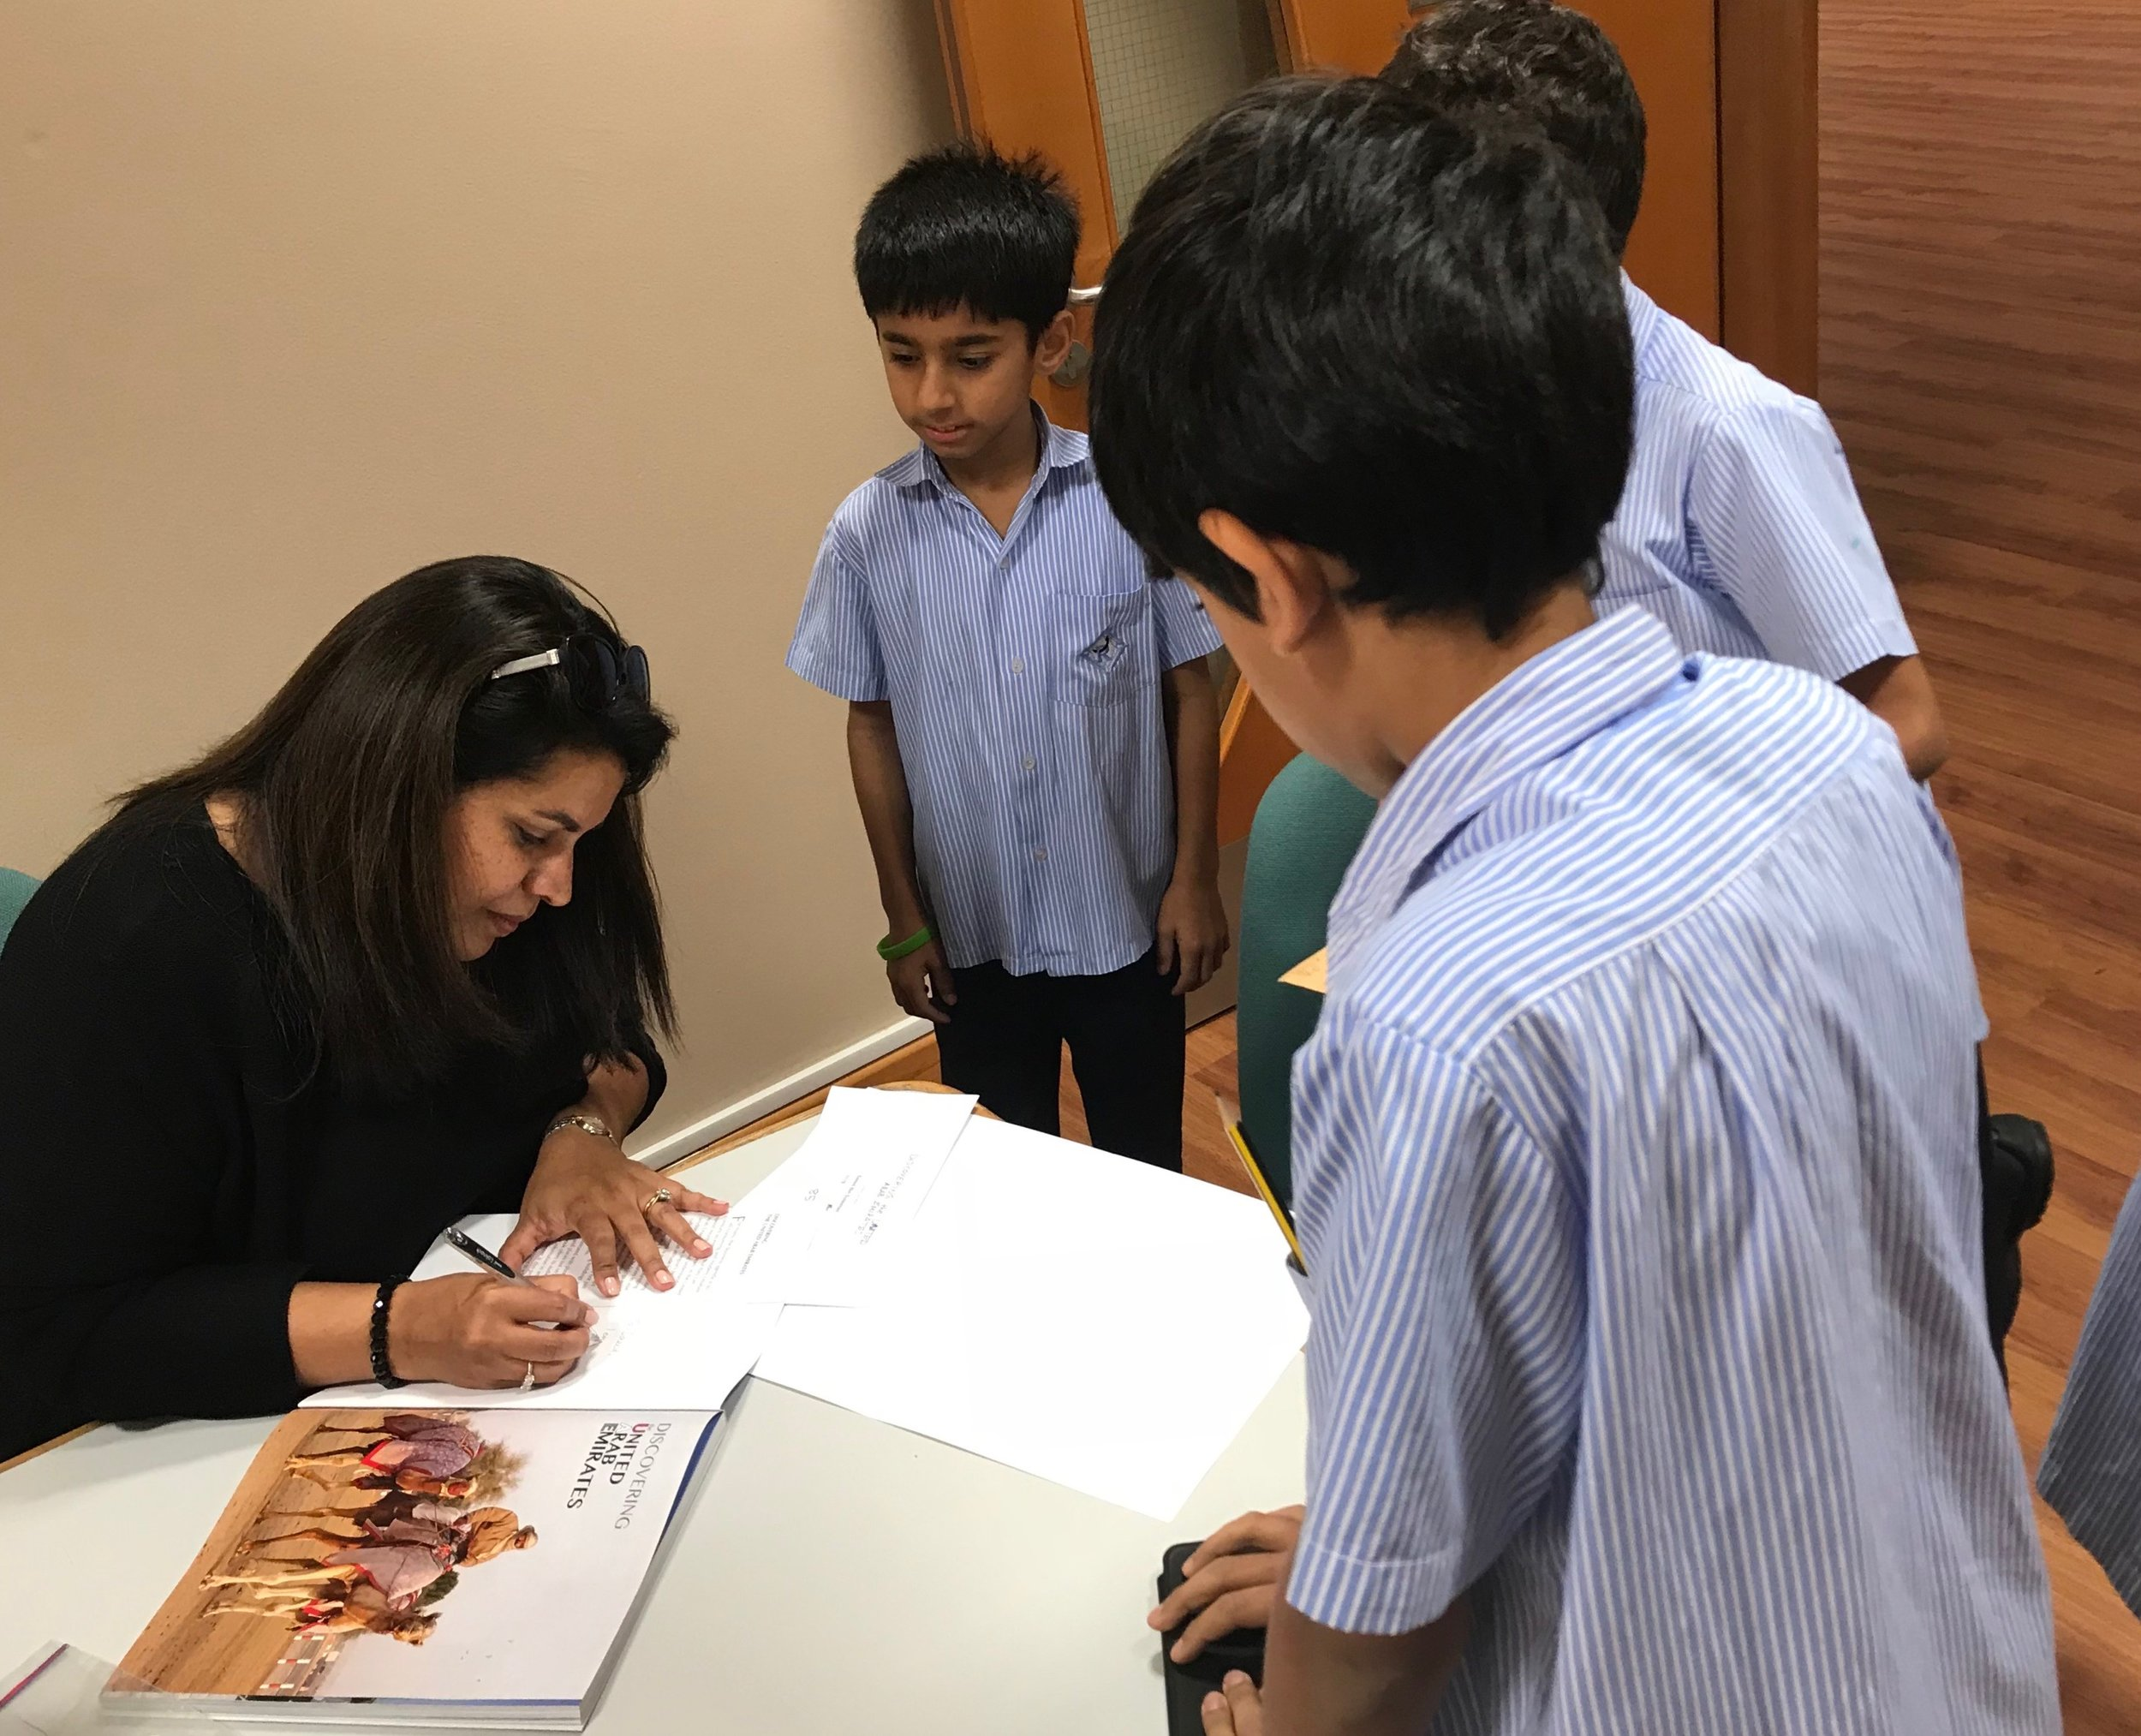 Signing books for students at Rashid School for Boys